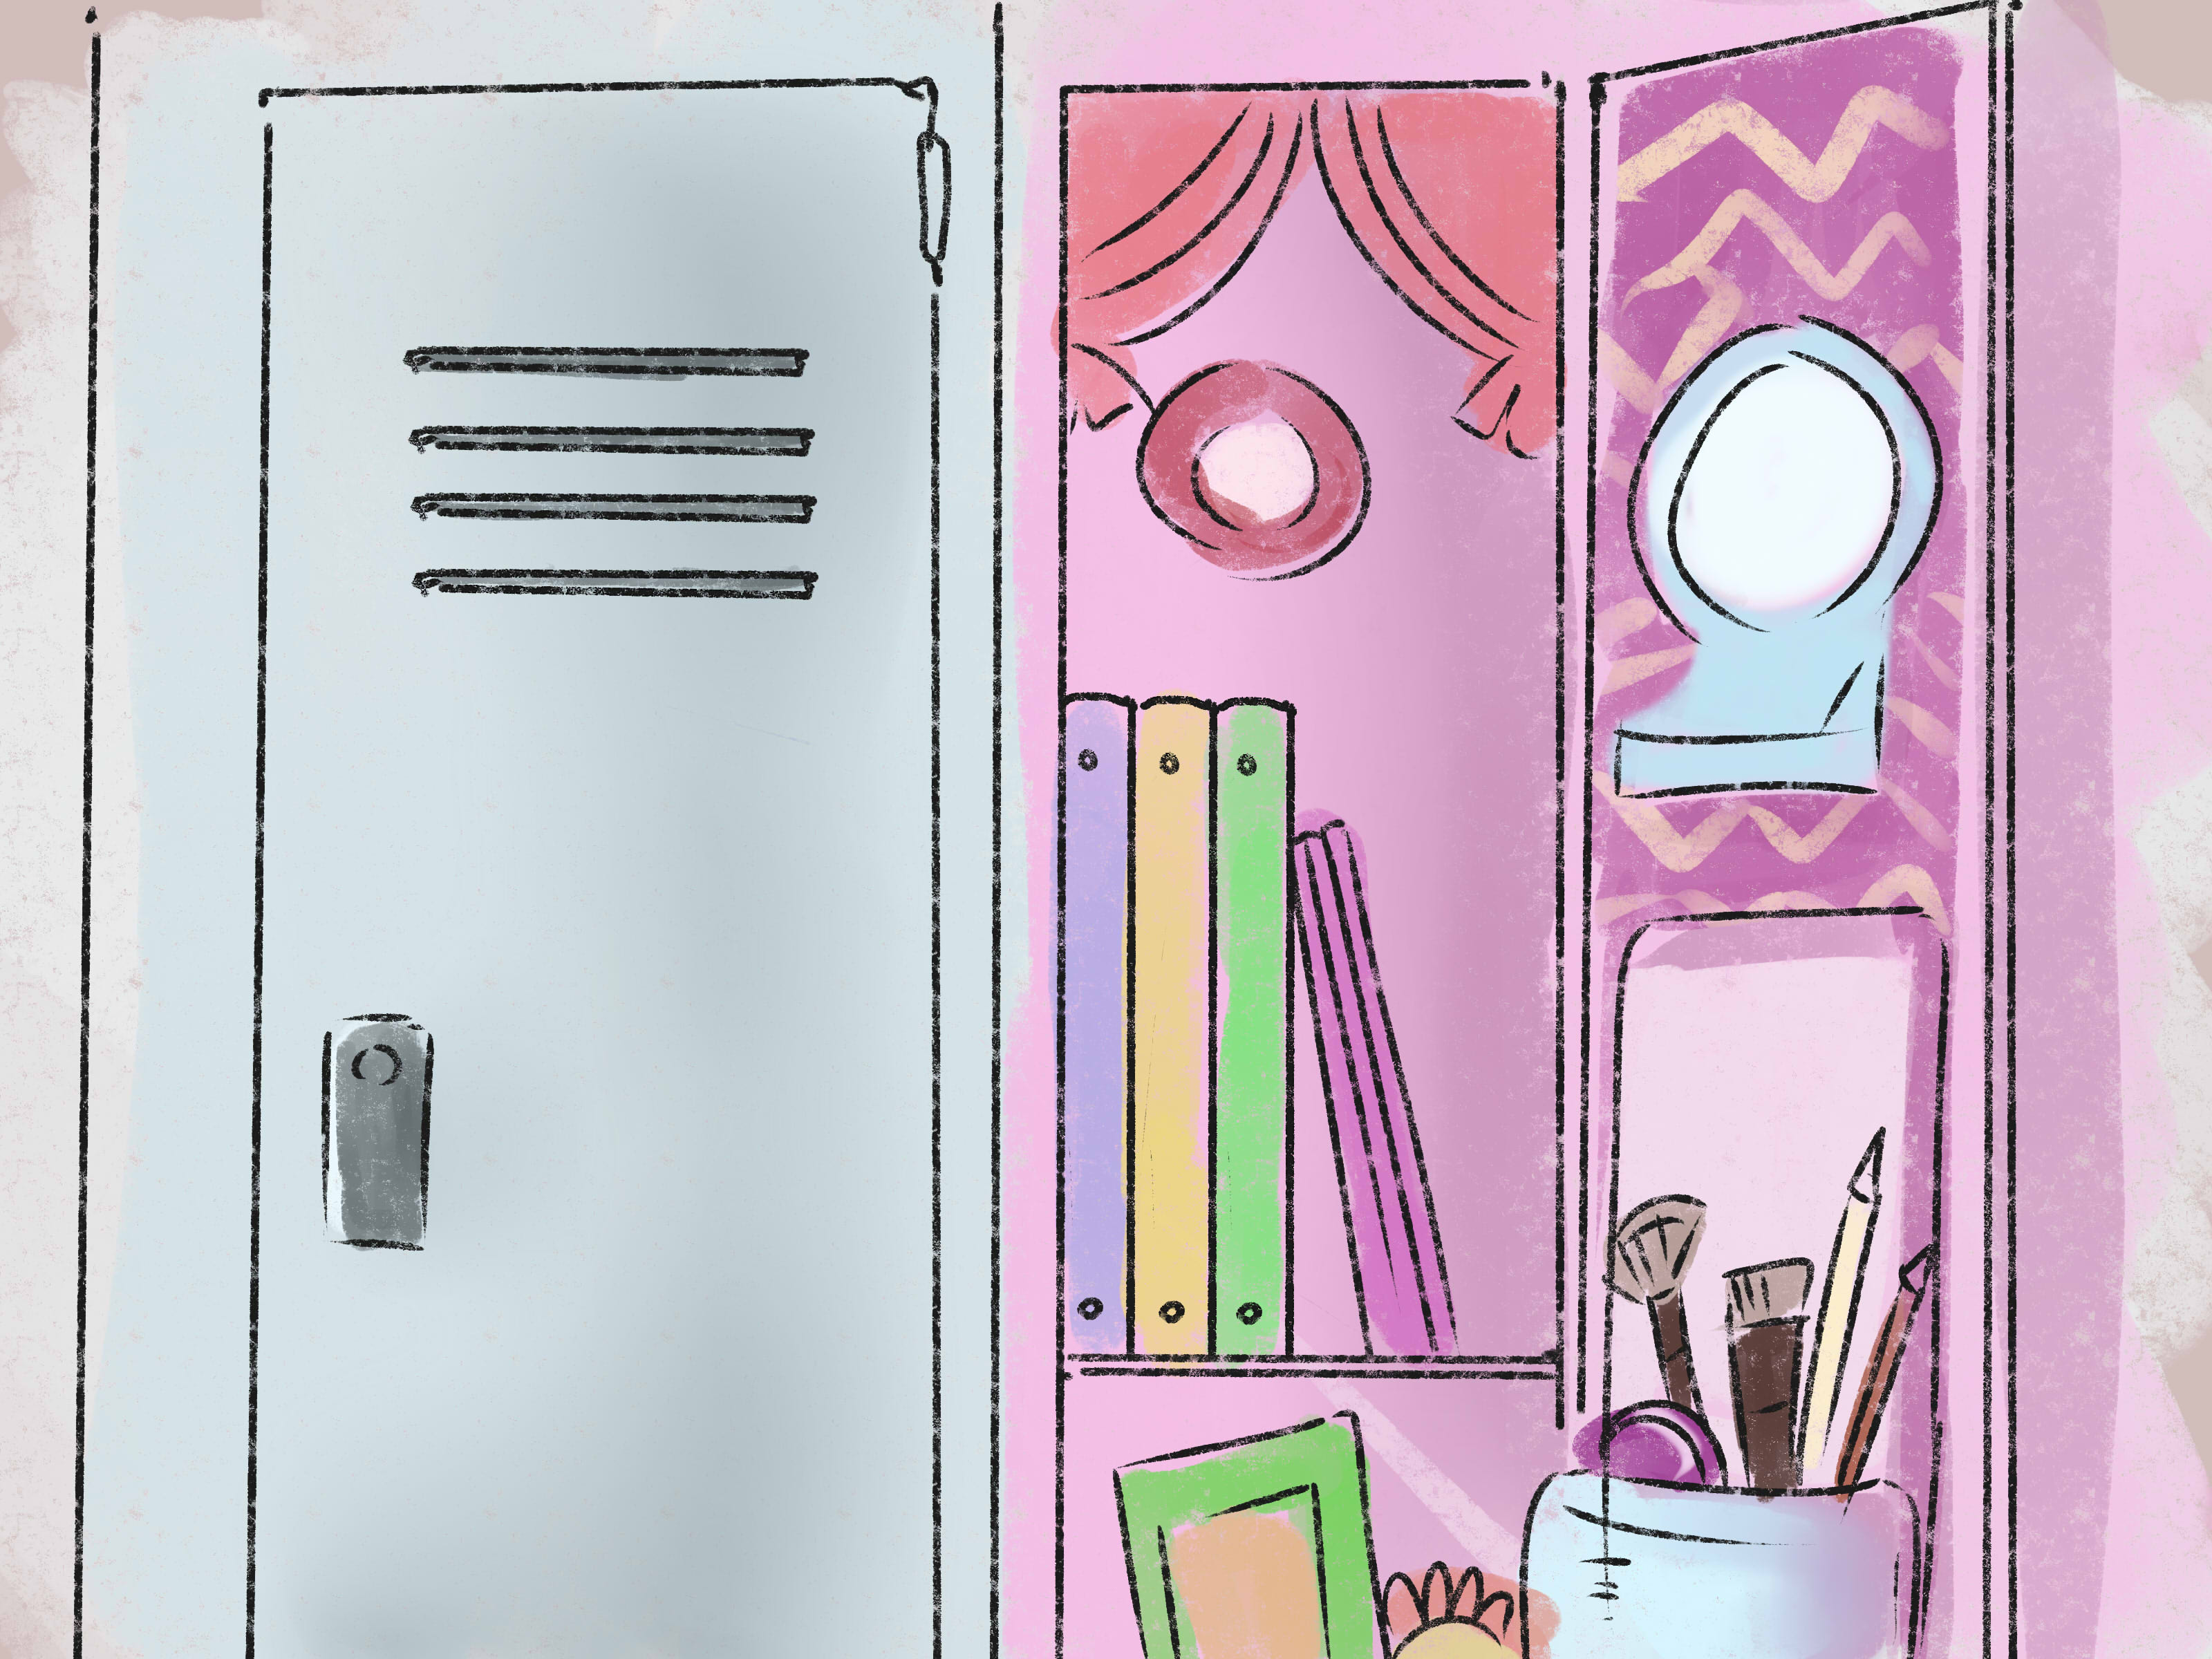 Shop back to school girls locker decor charmposh charmposh trends for back to school time its all about locker decor for girls from locker rugs to chandelier lightingorganizing locker storage is the biggest trend and arubaitofo Images